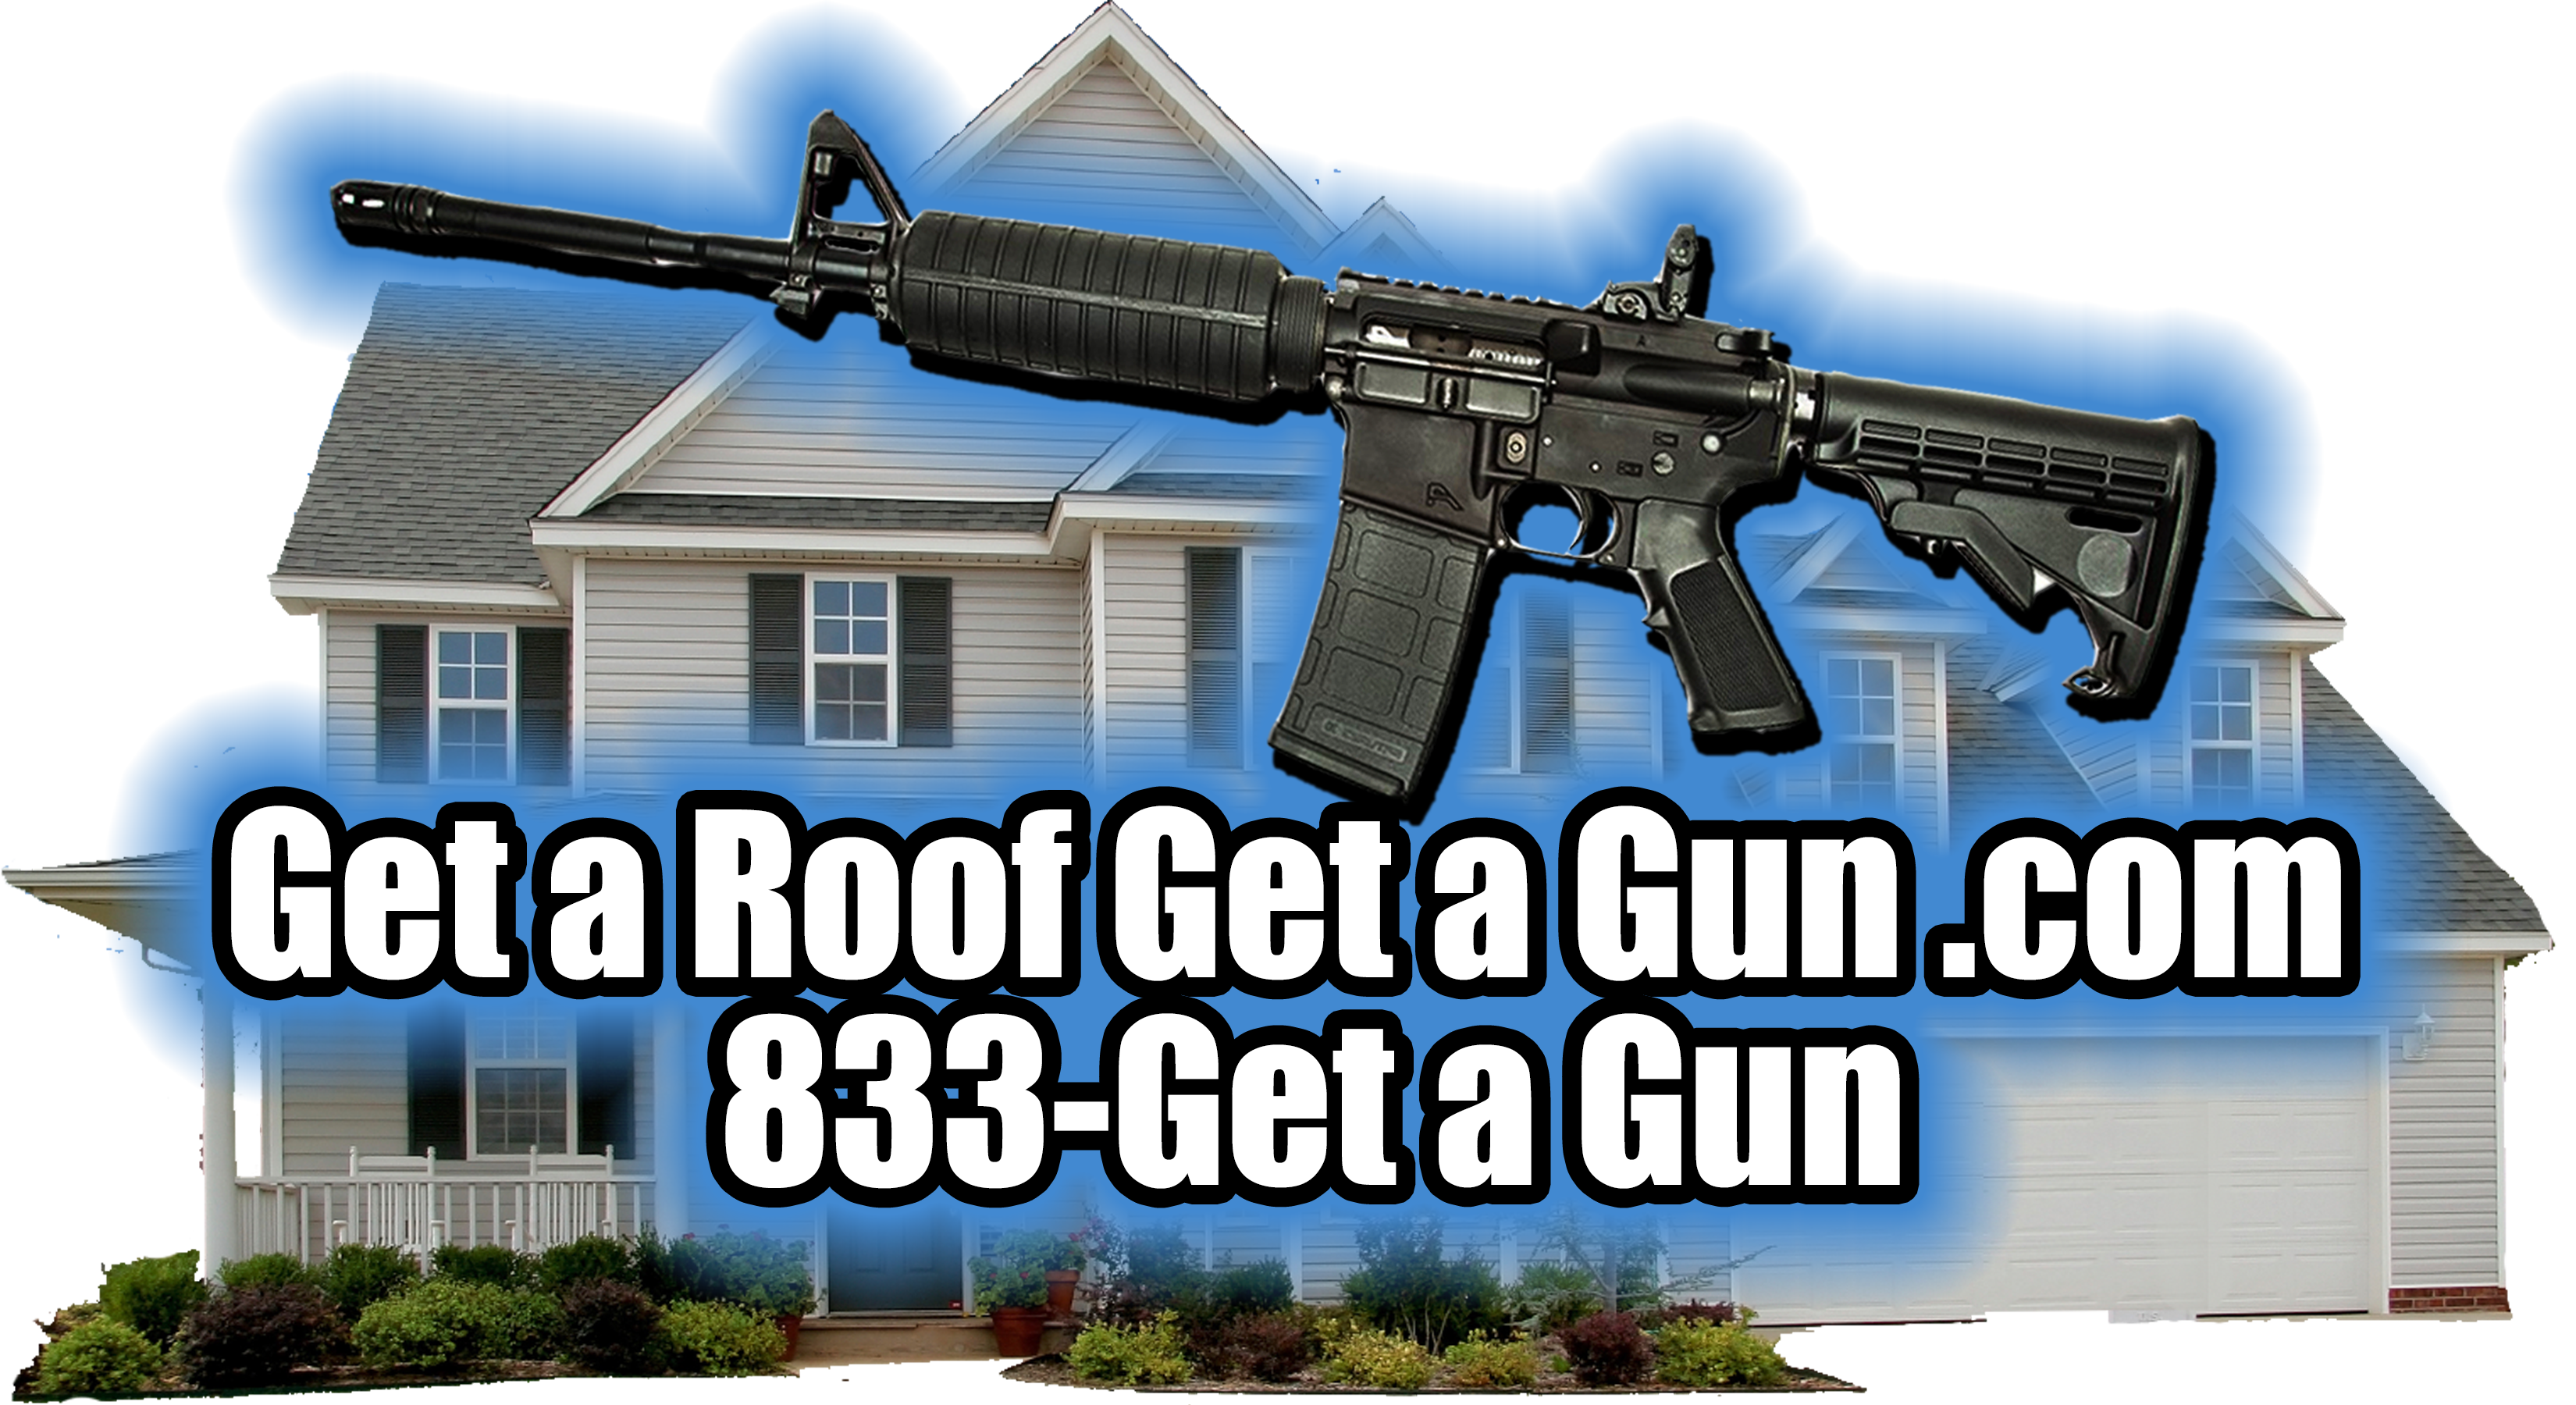 clipart black and white stock Guns clipart roofing. Home page get a